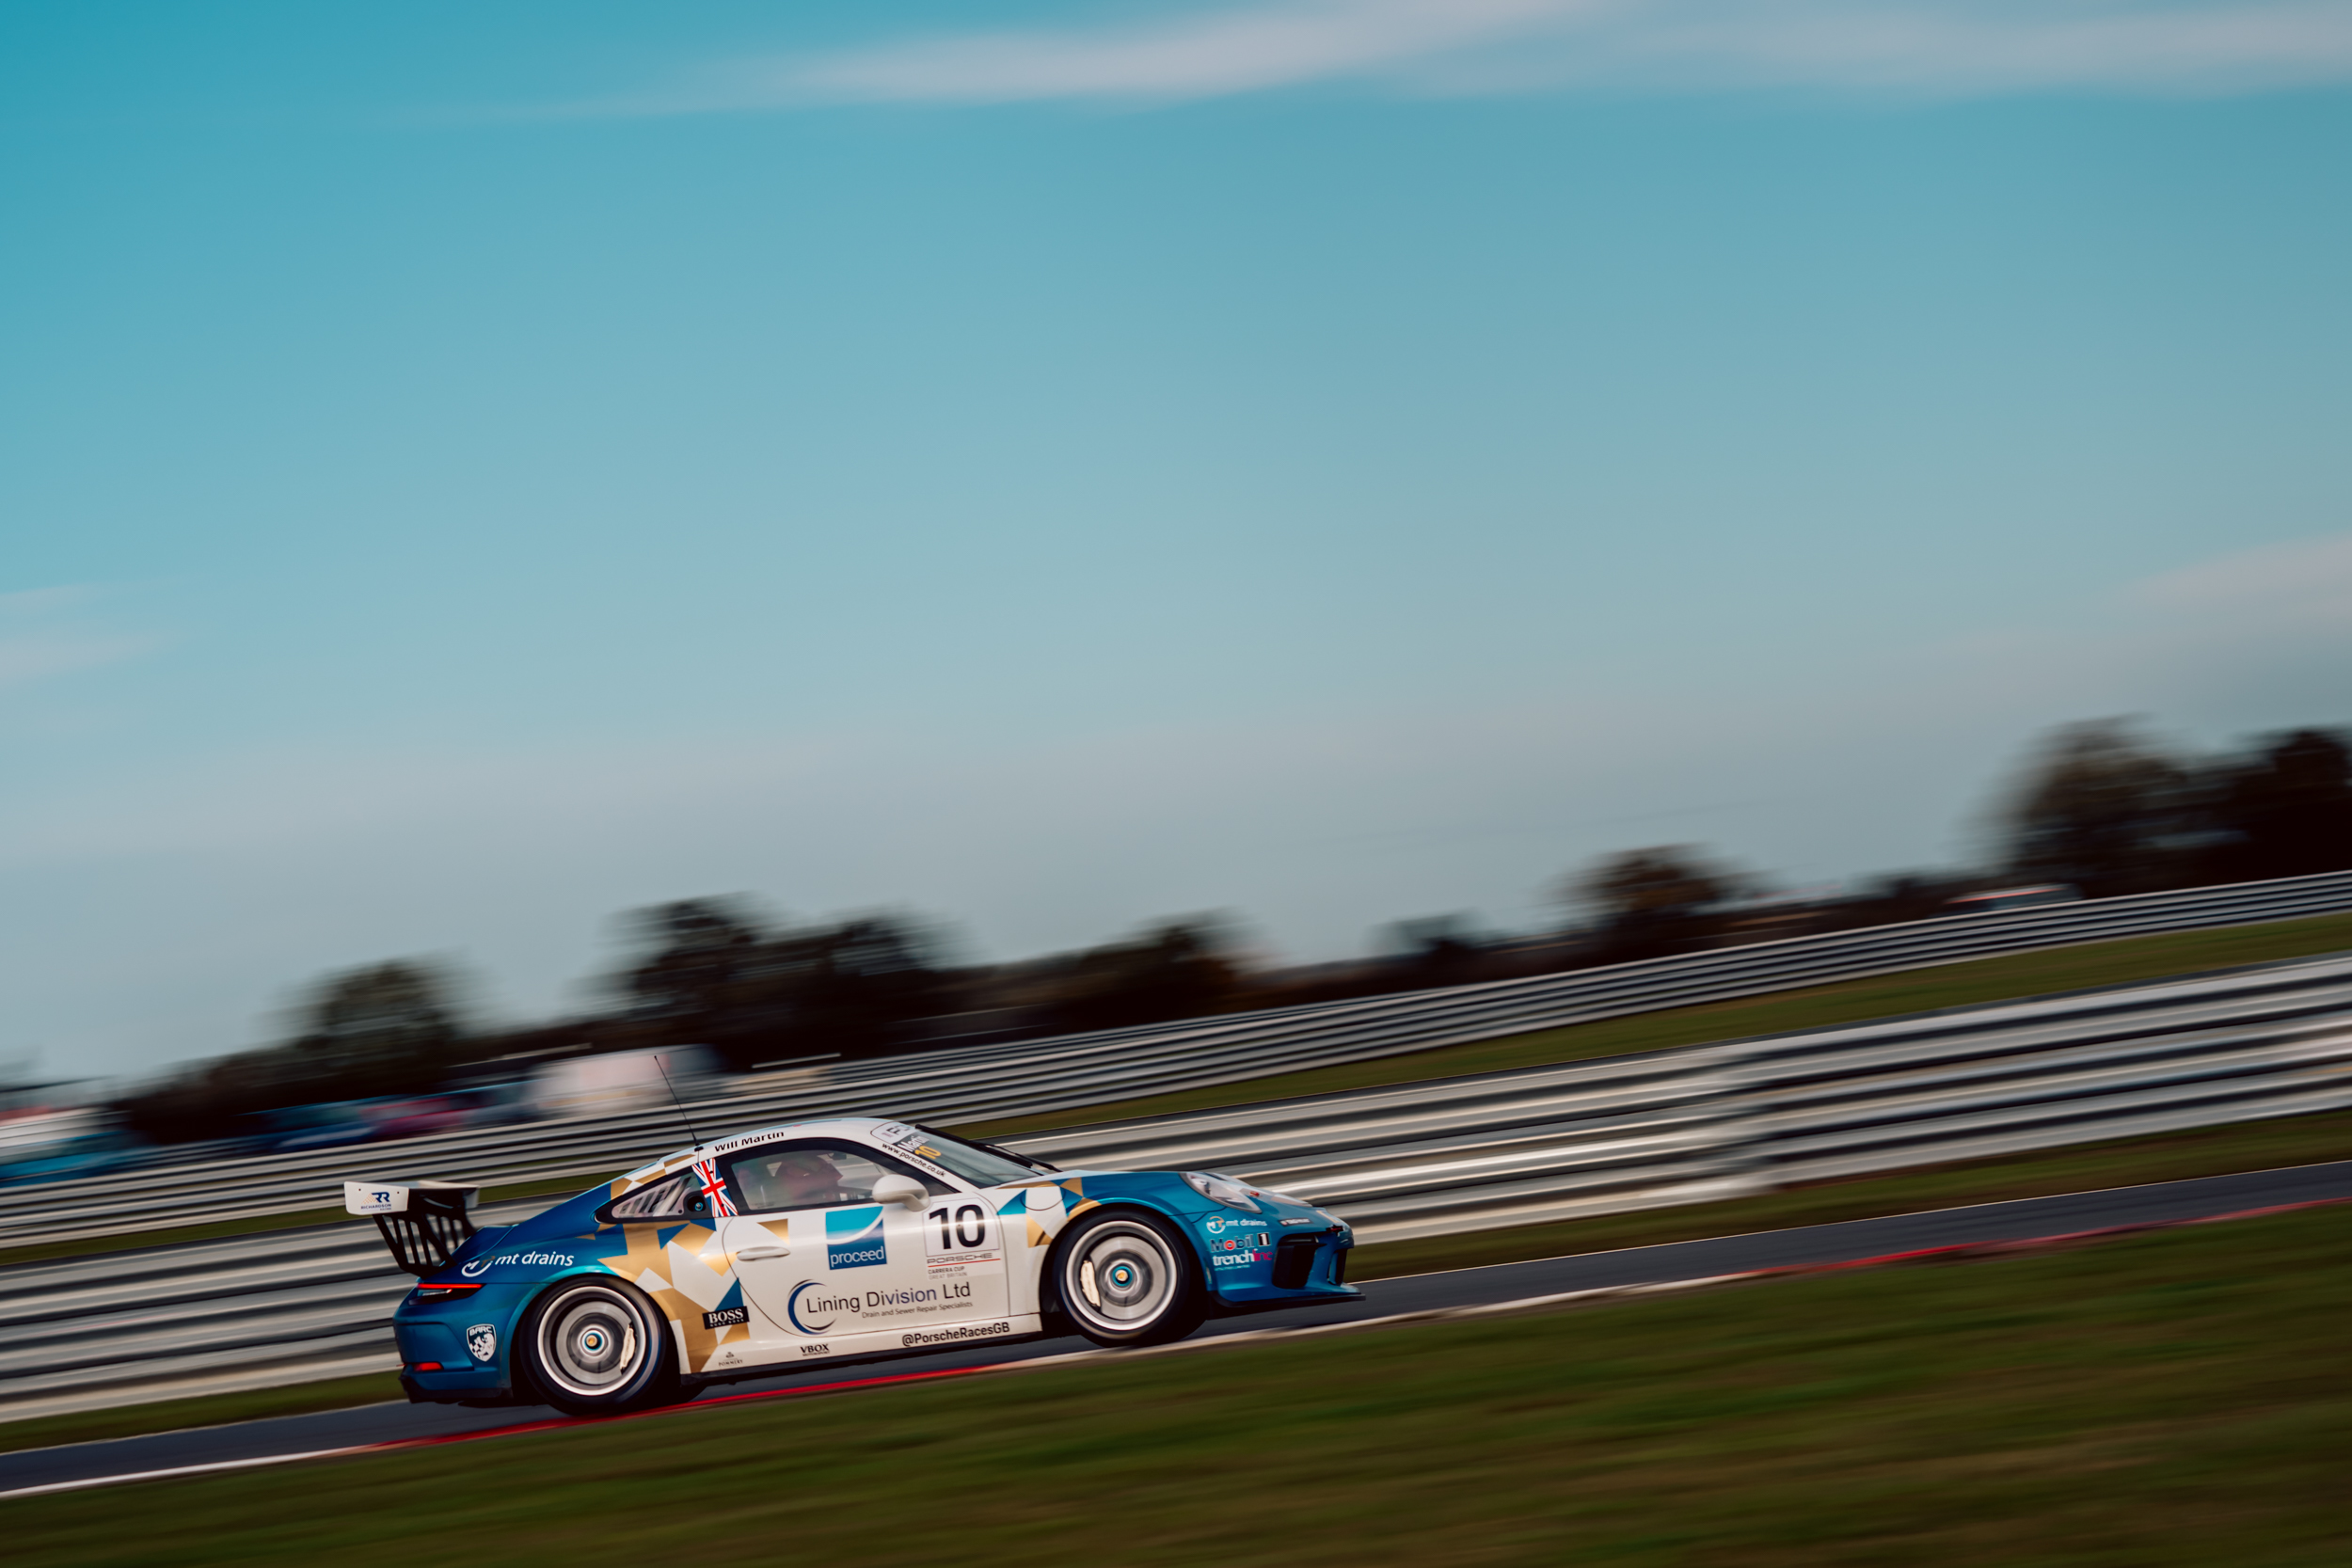 Strong showing for Richardson Racing at Snetterton